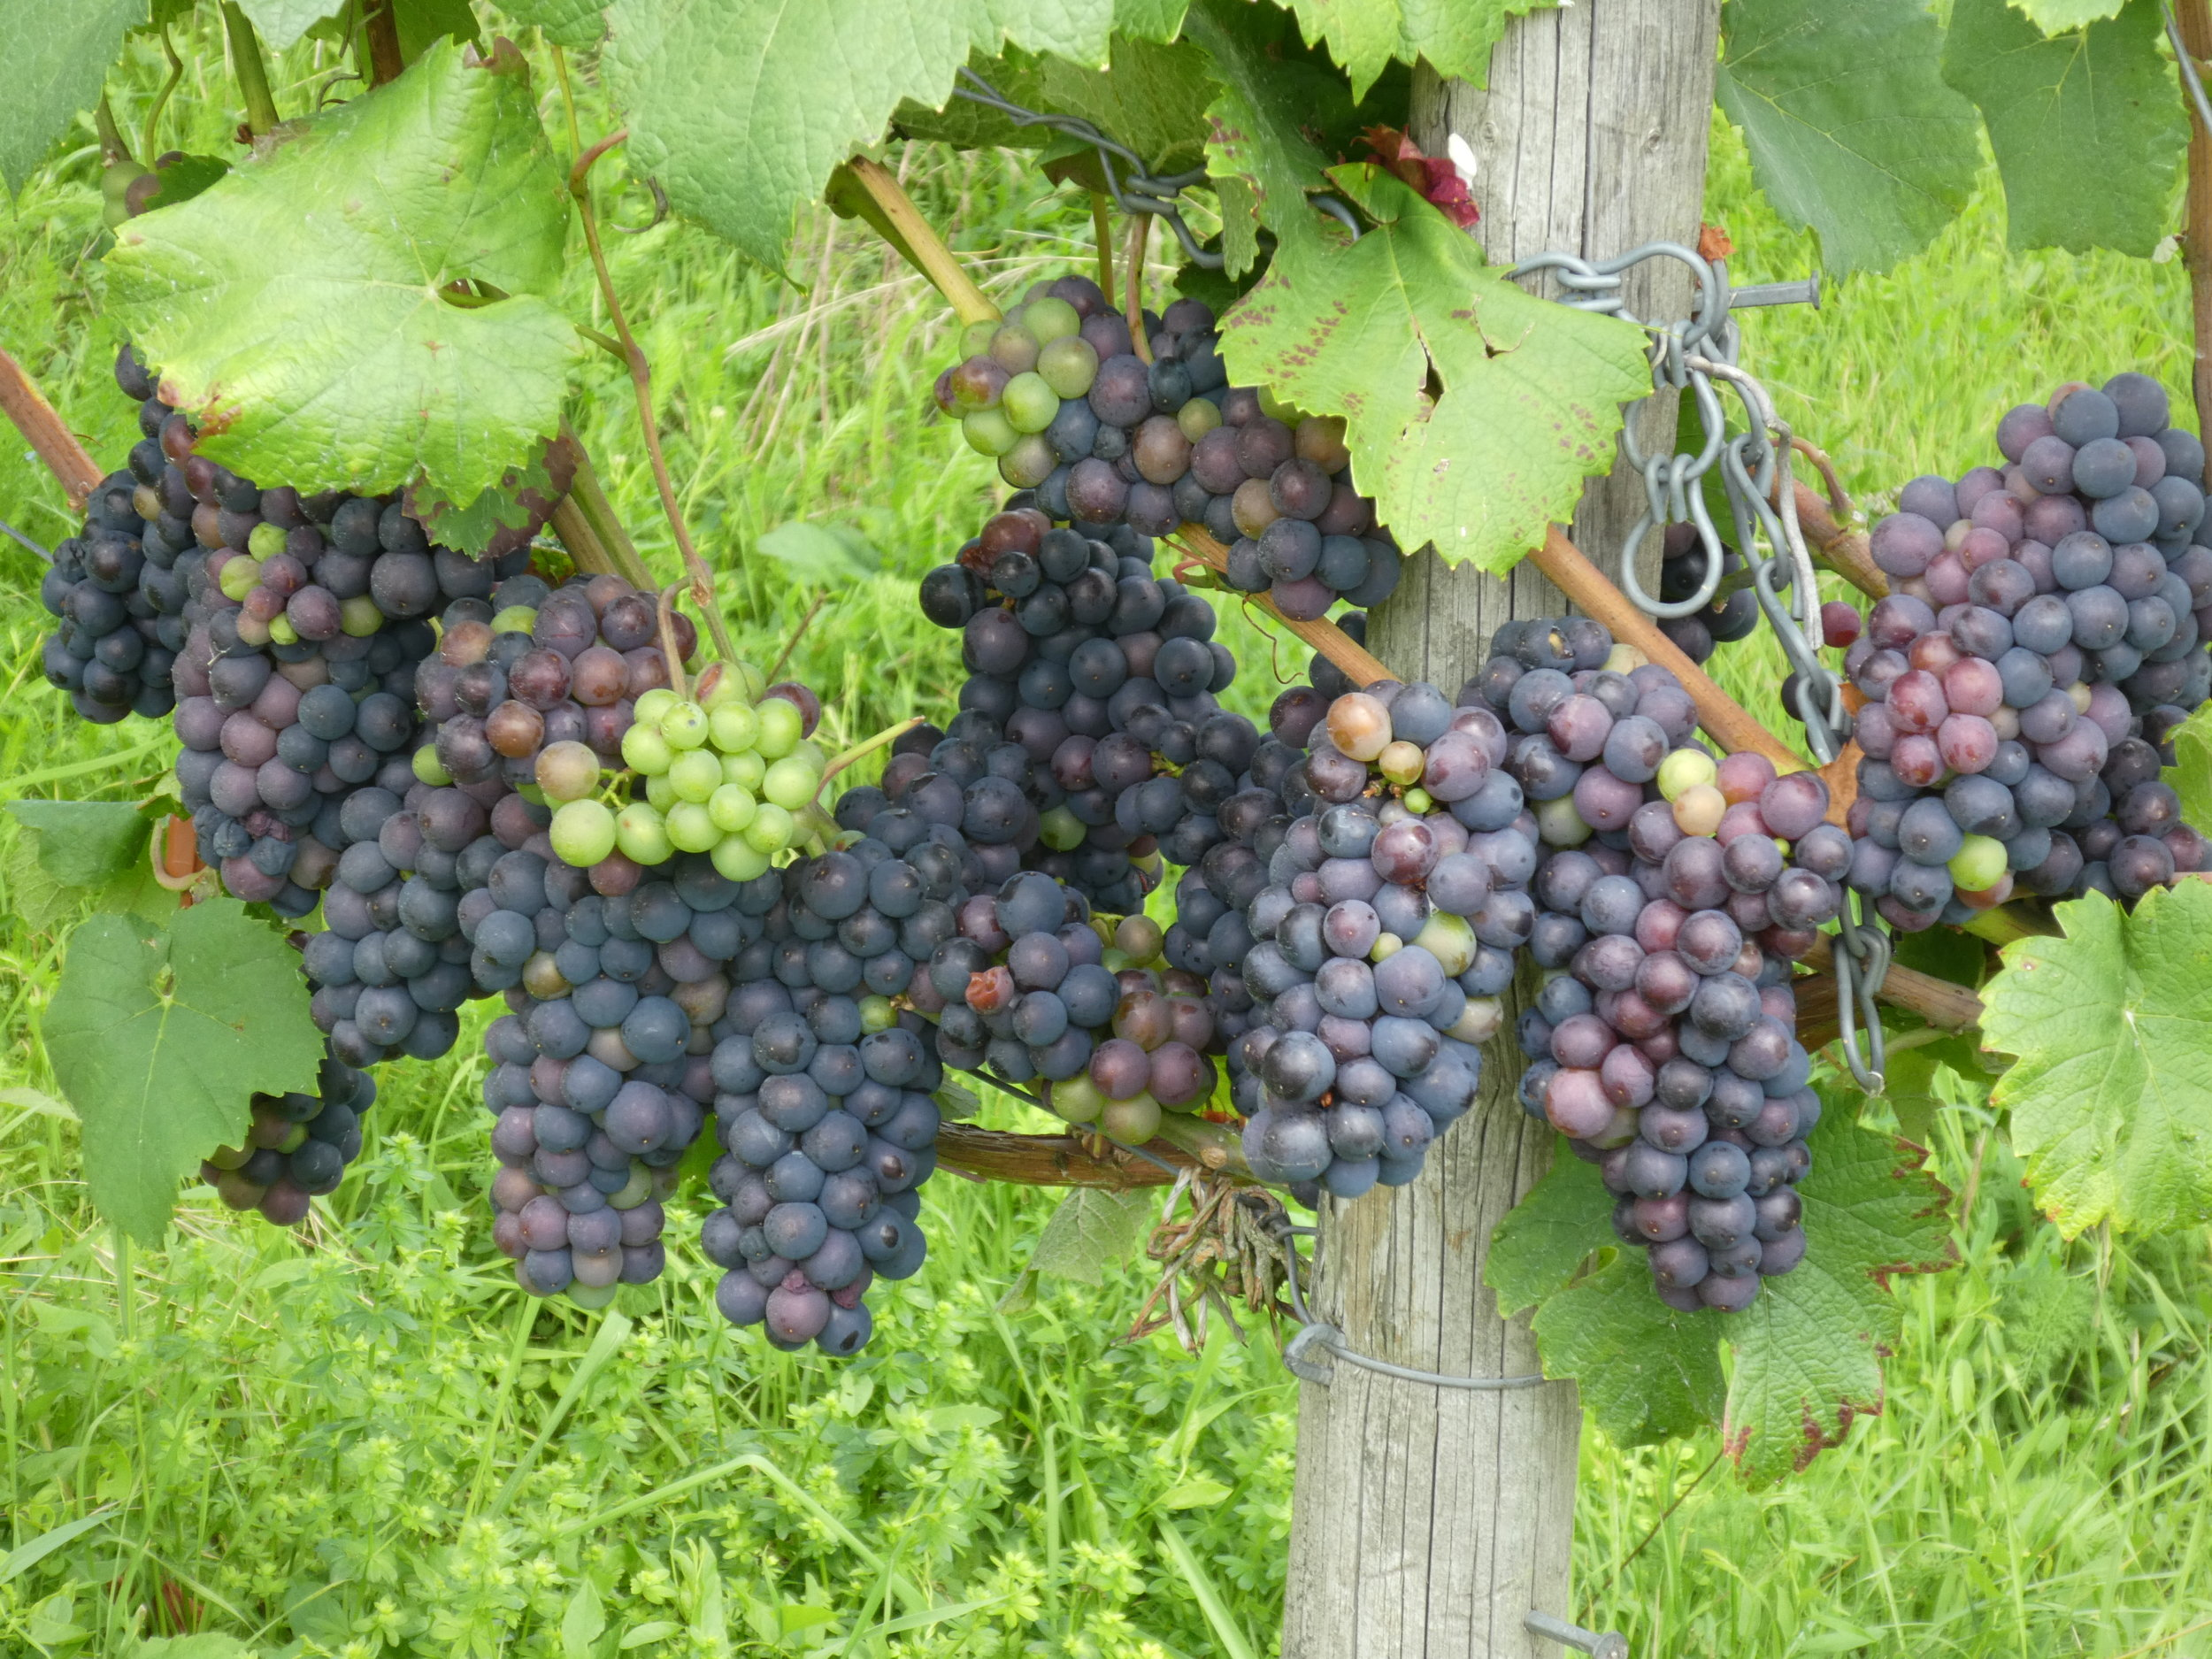 For example, the Rheingau wine area, but also many other countryside beauty-spots, are easy to reach from Frankfurt by local train. Grapes as seen on August 20th. It seems to me that the potential harvest has recovered from early blossum and late frost we had earlier this year.